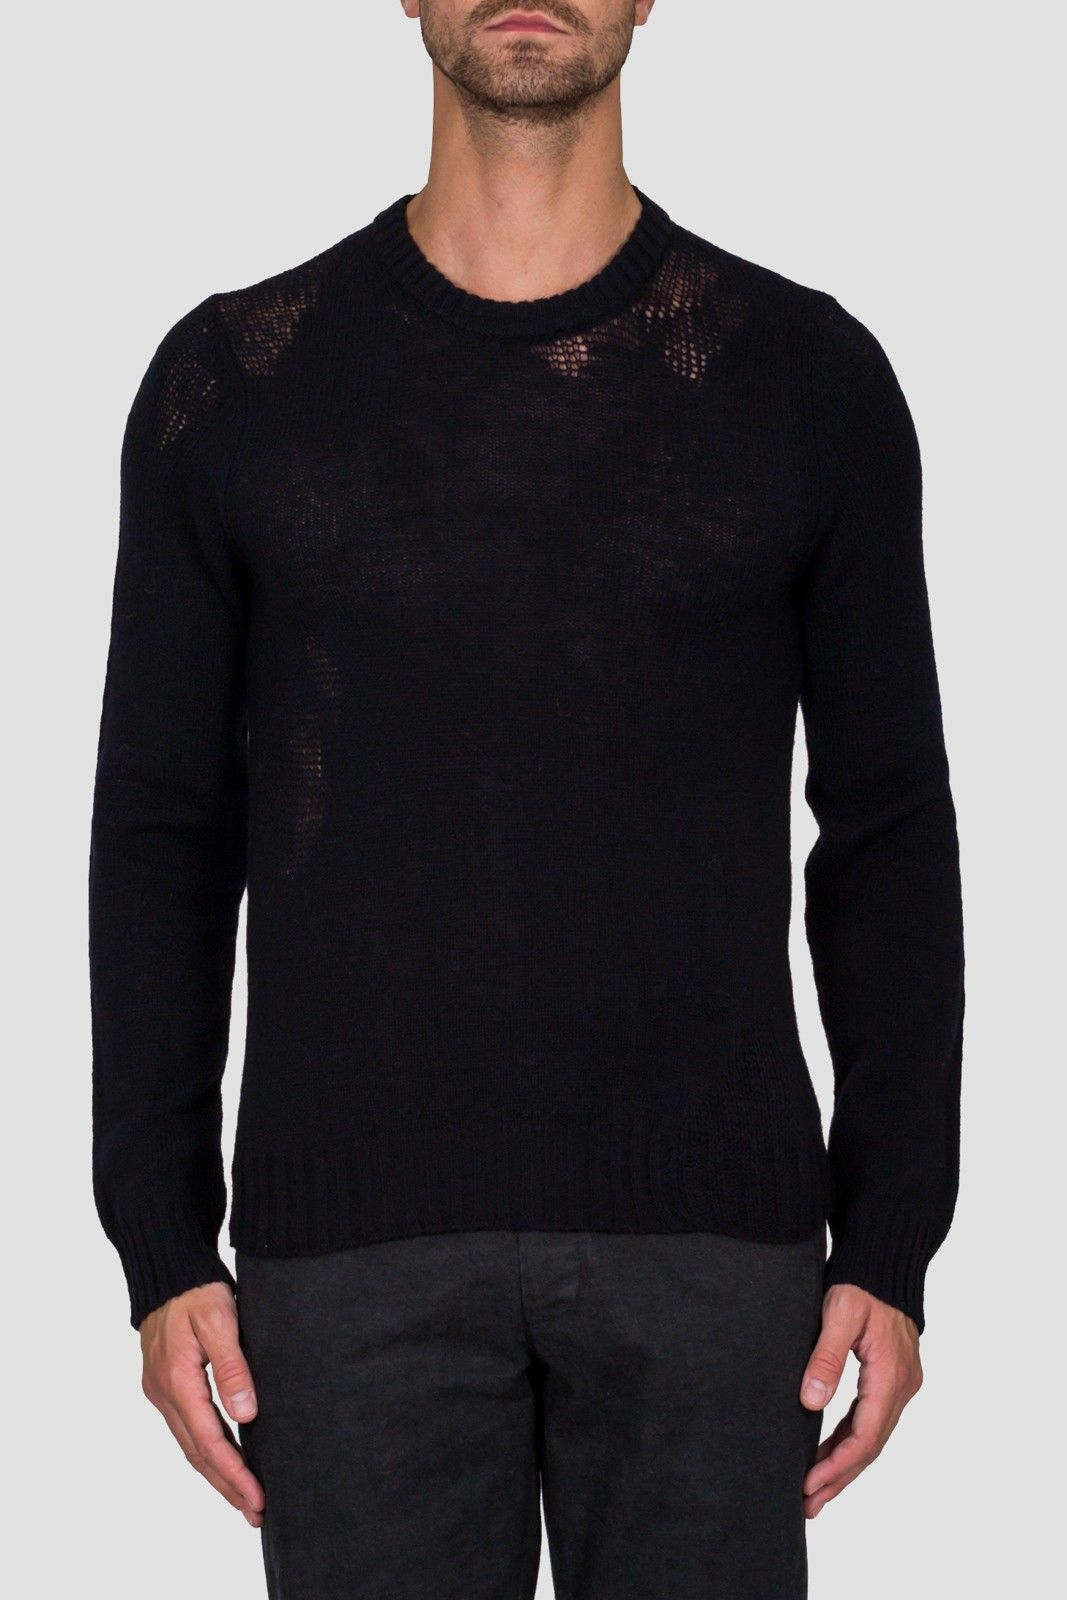 DISTRESSED KNIT JUMPER | Dope Factory